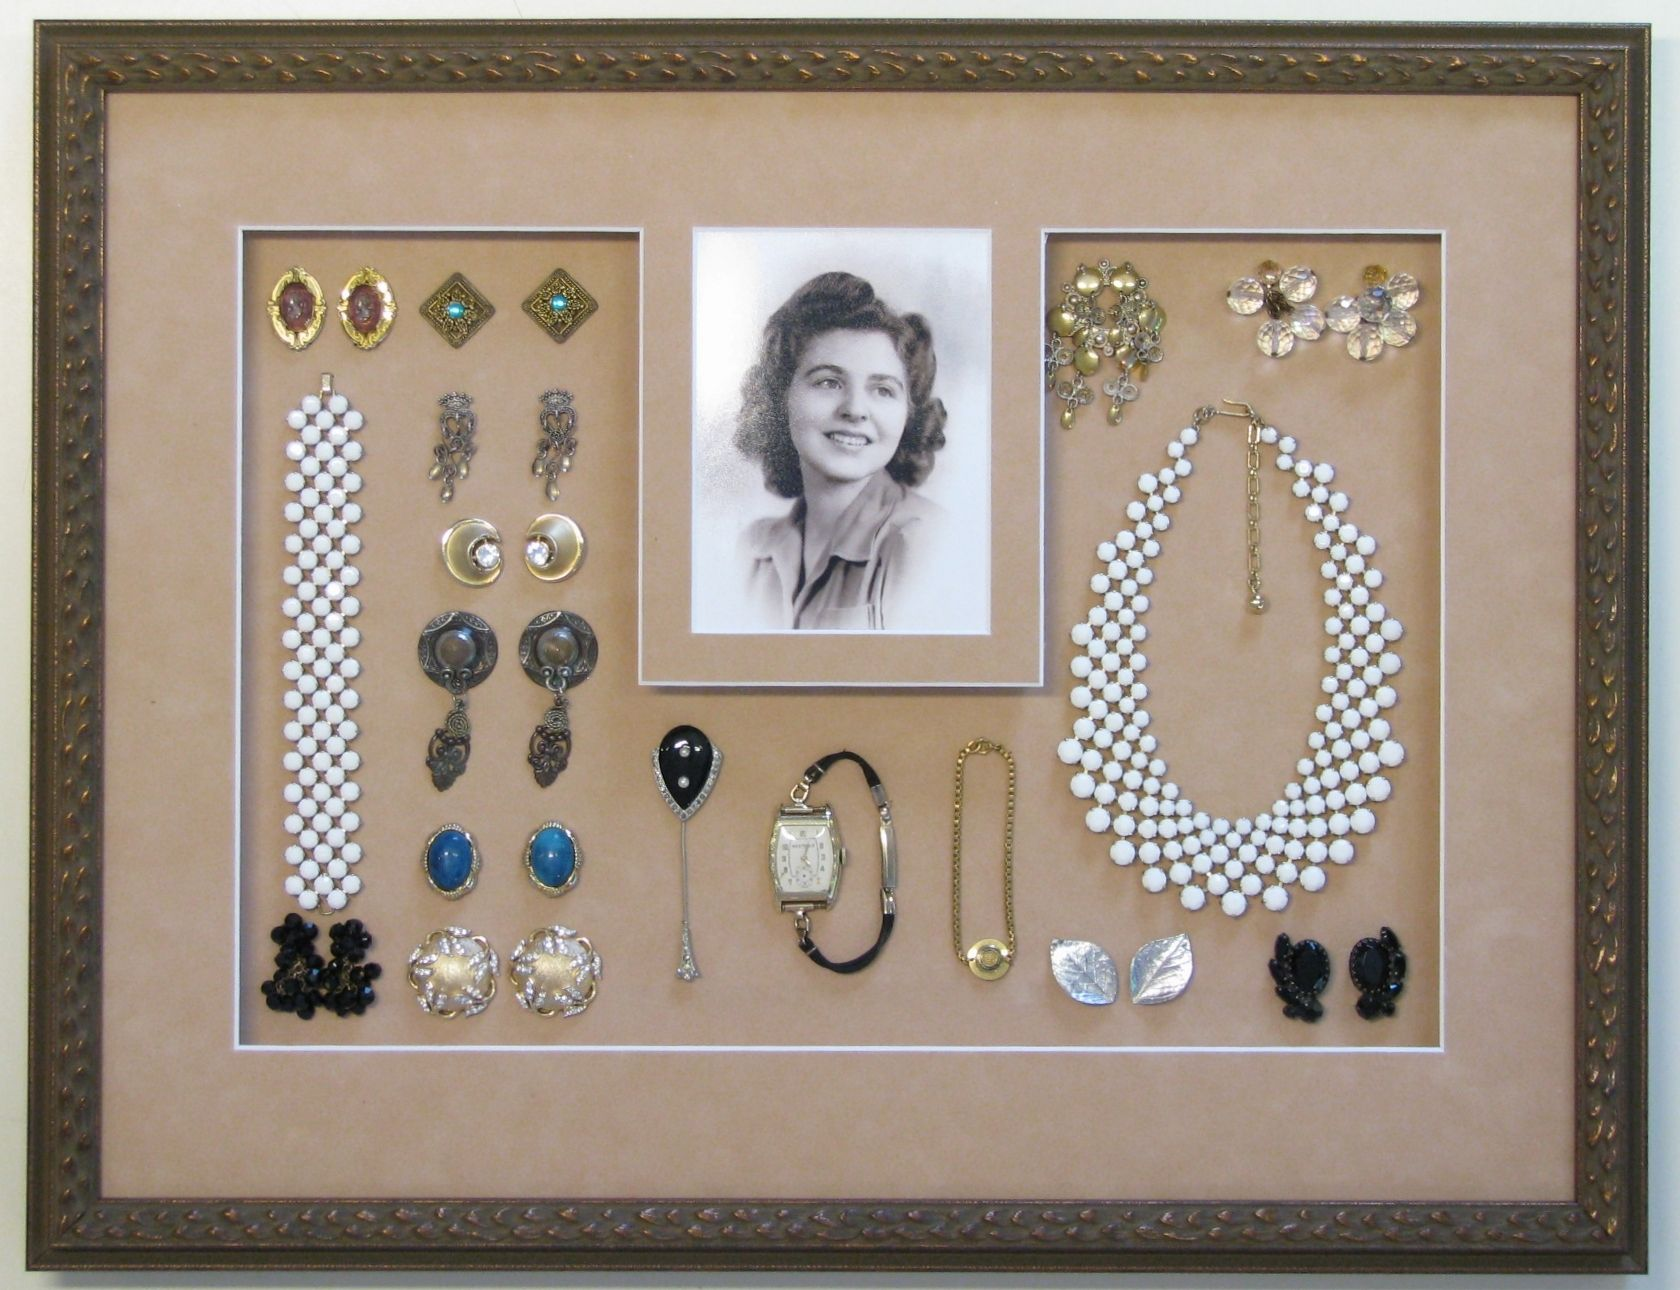 moms antique jewelry and photo shadowbox